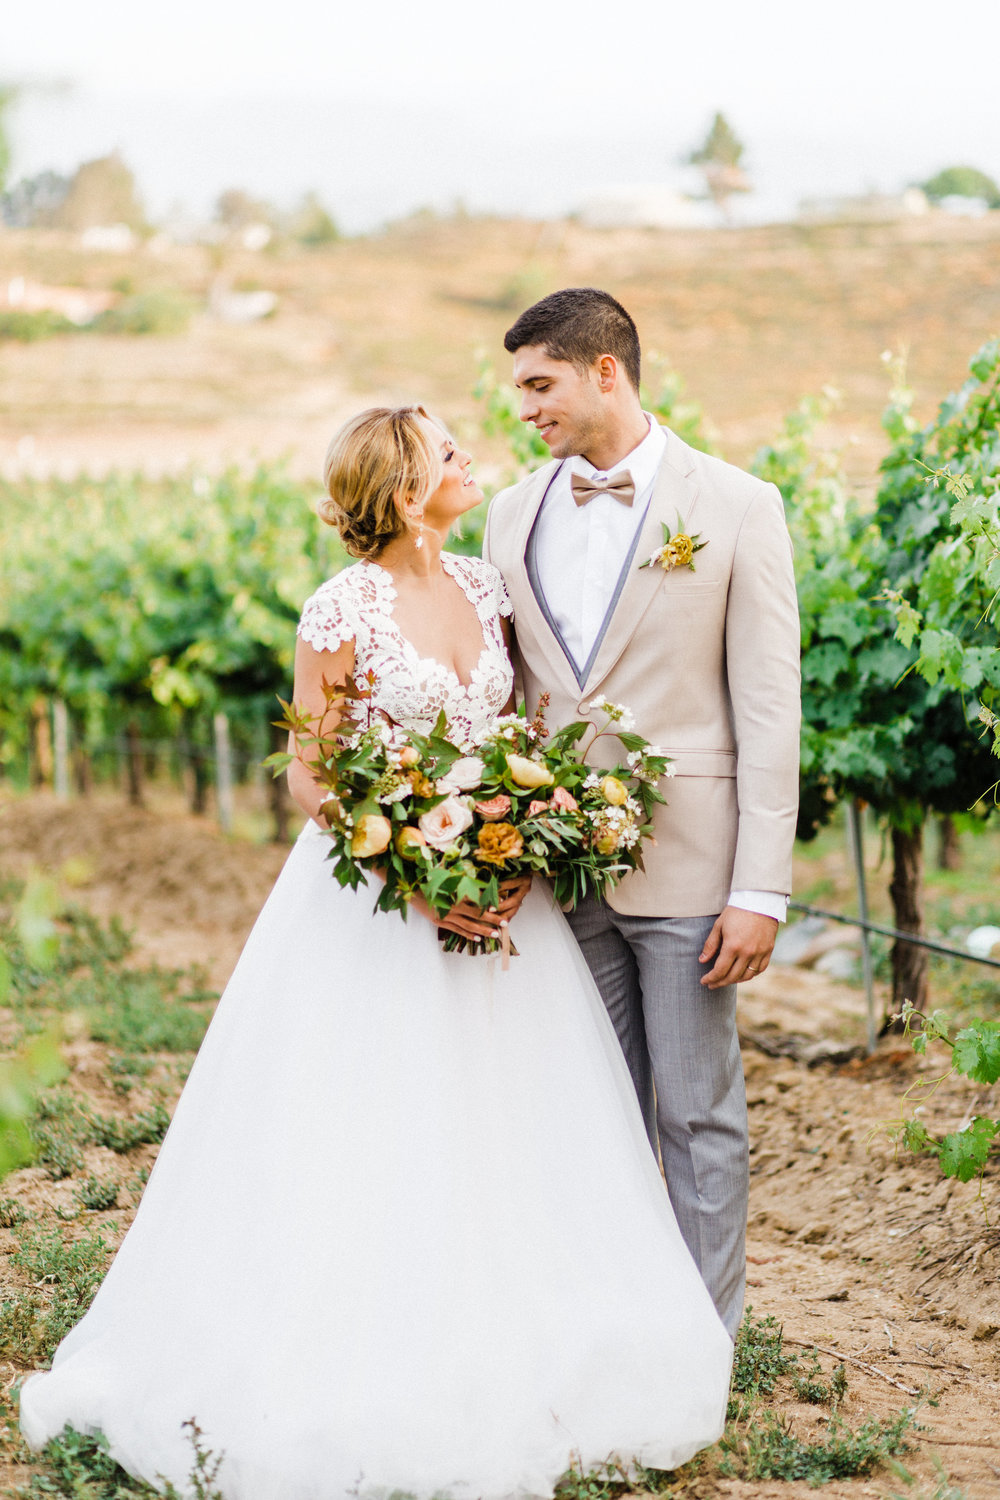 Vineyard Wedding Inspiration in Orange | Avensole Winery | Damrais Mia Photography | Michelle Garibay Events